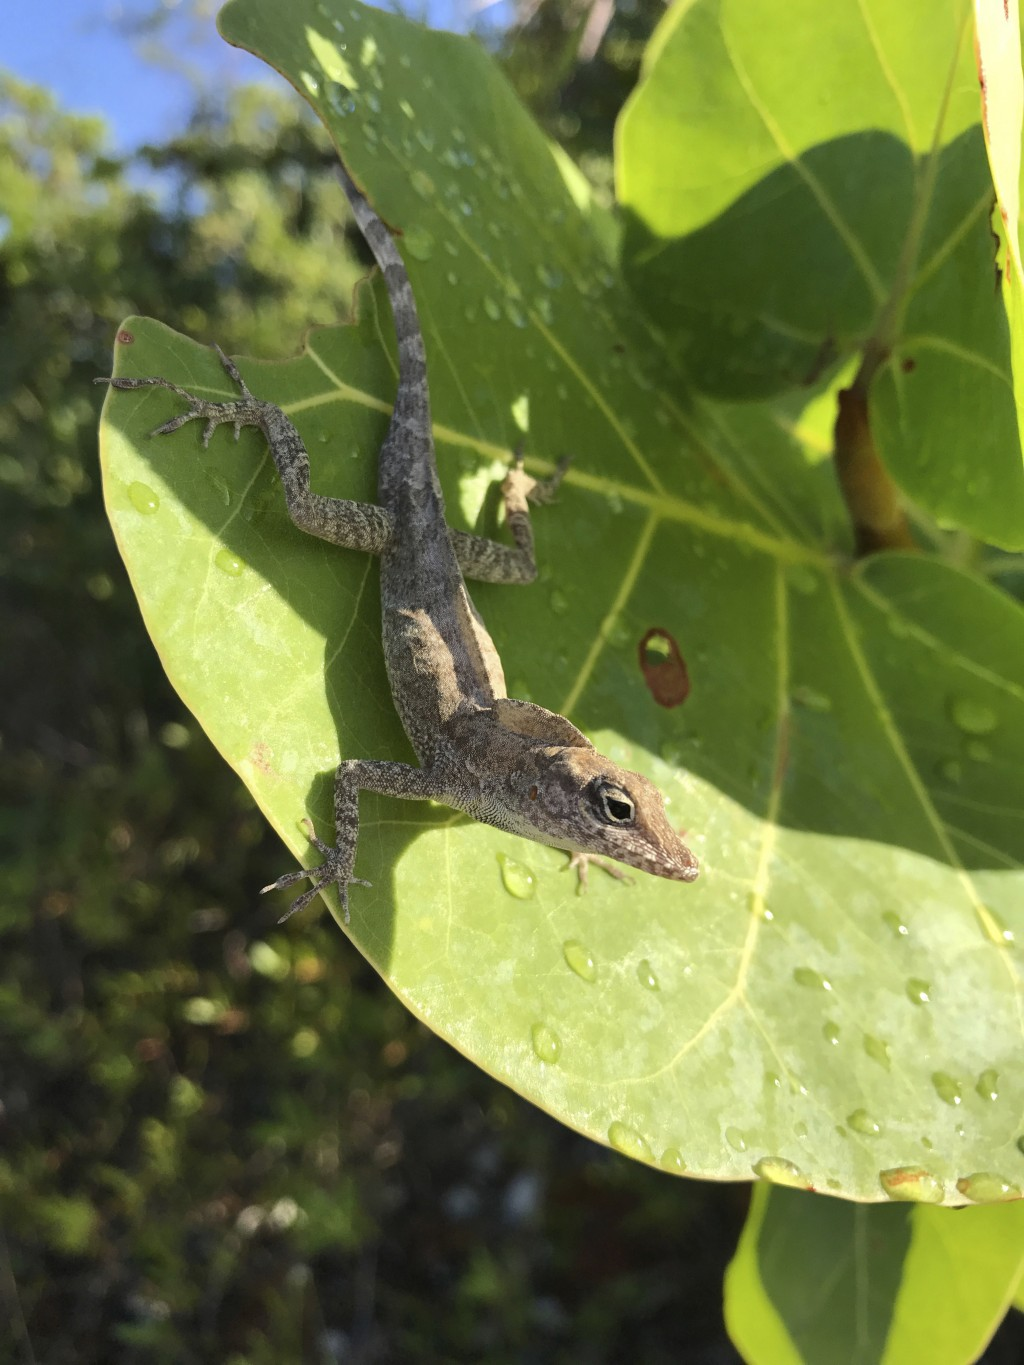 This Aug. 30, 2017 photo provided by Colin Donihue, shows an anoles lizard in the Turks and Caicos Islands. According to a study in the Wednesday, Jul